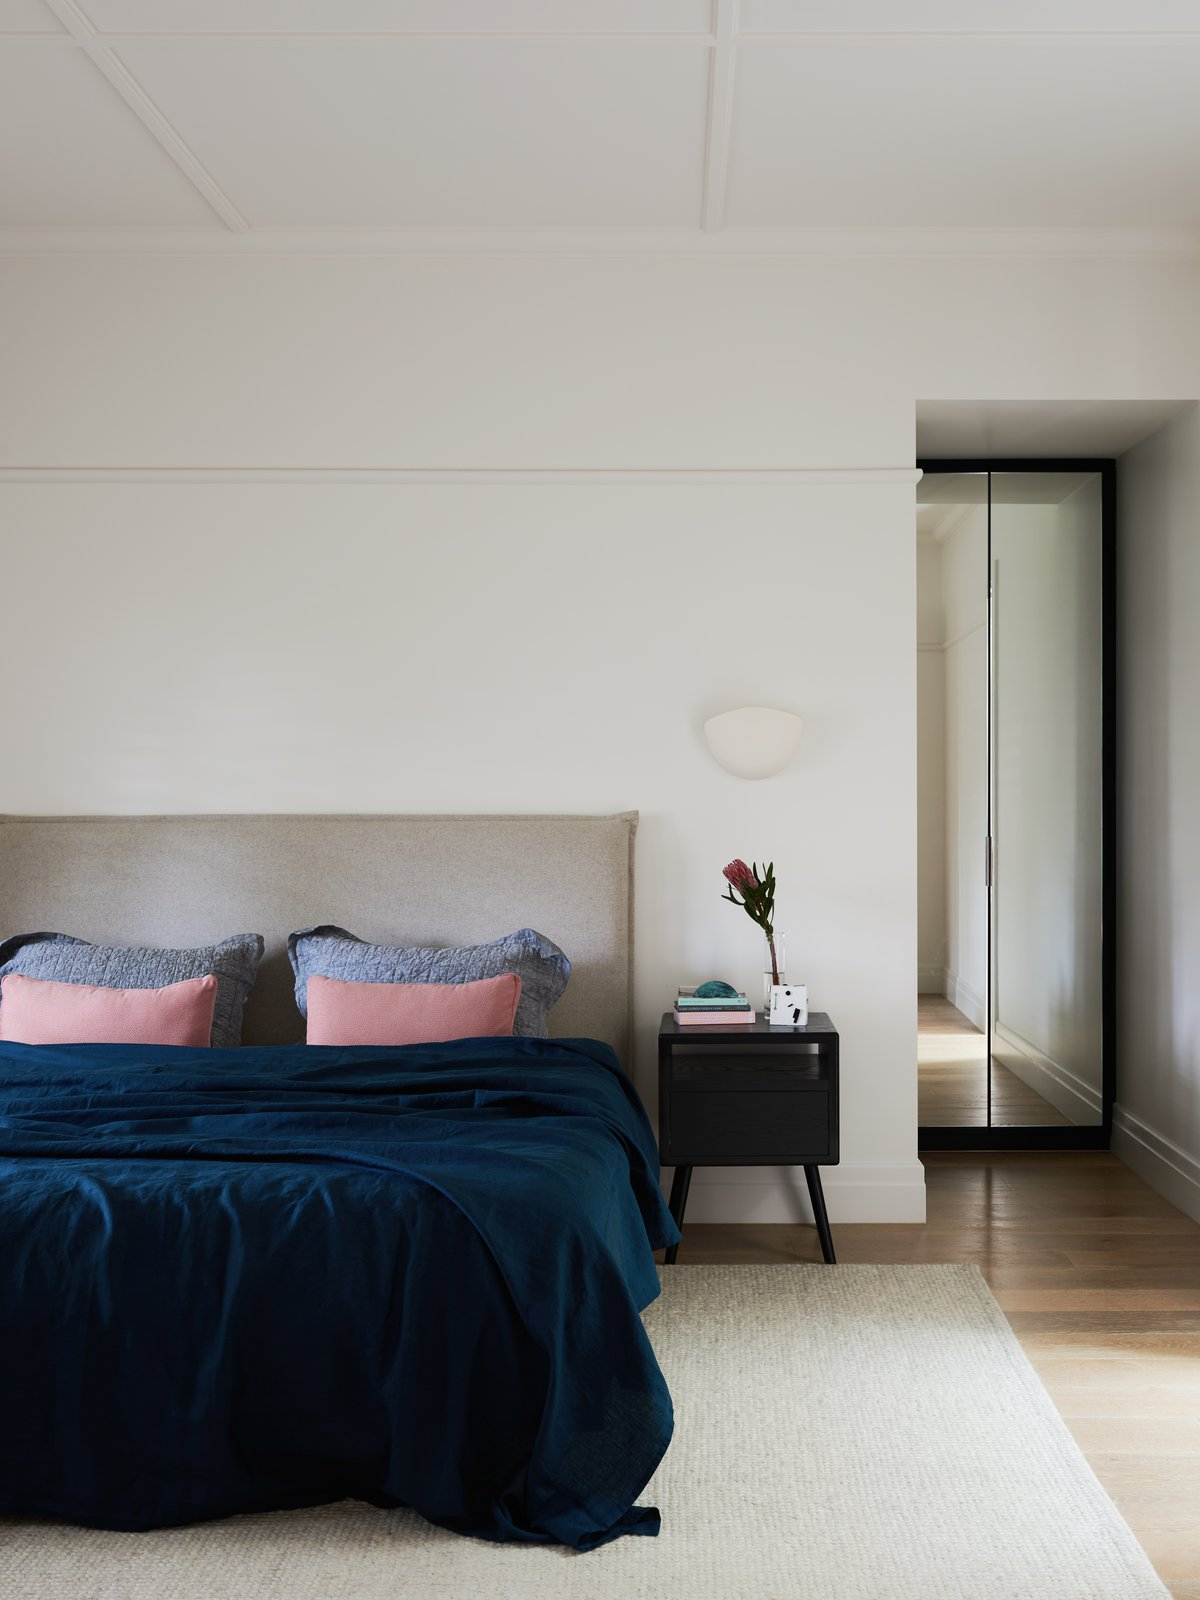 Bedroom, Bed, Night Stands, Wall Lighting, Light Hardwood Floor, and Rug Floor  Photo 9 of 10 in A Run-Down Melbourne Bungalow's Makeover Embraces Light and Family Life